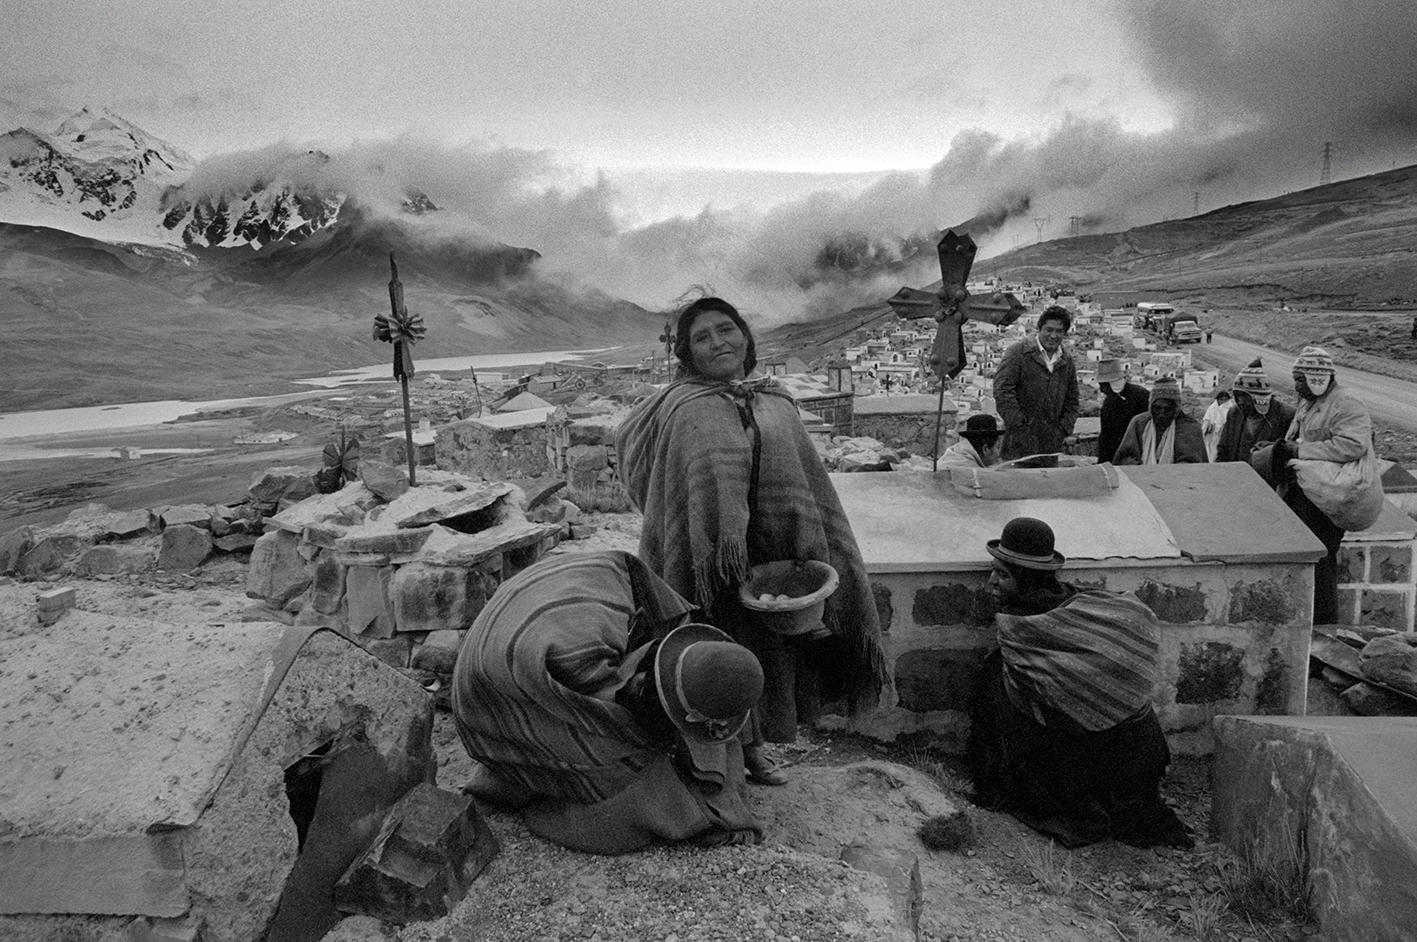 &#169Christine Spengler - Bolivie, 1982. Milluni.